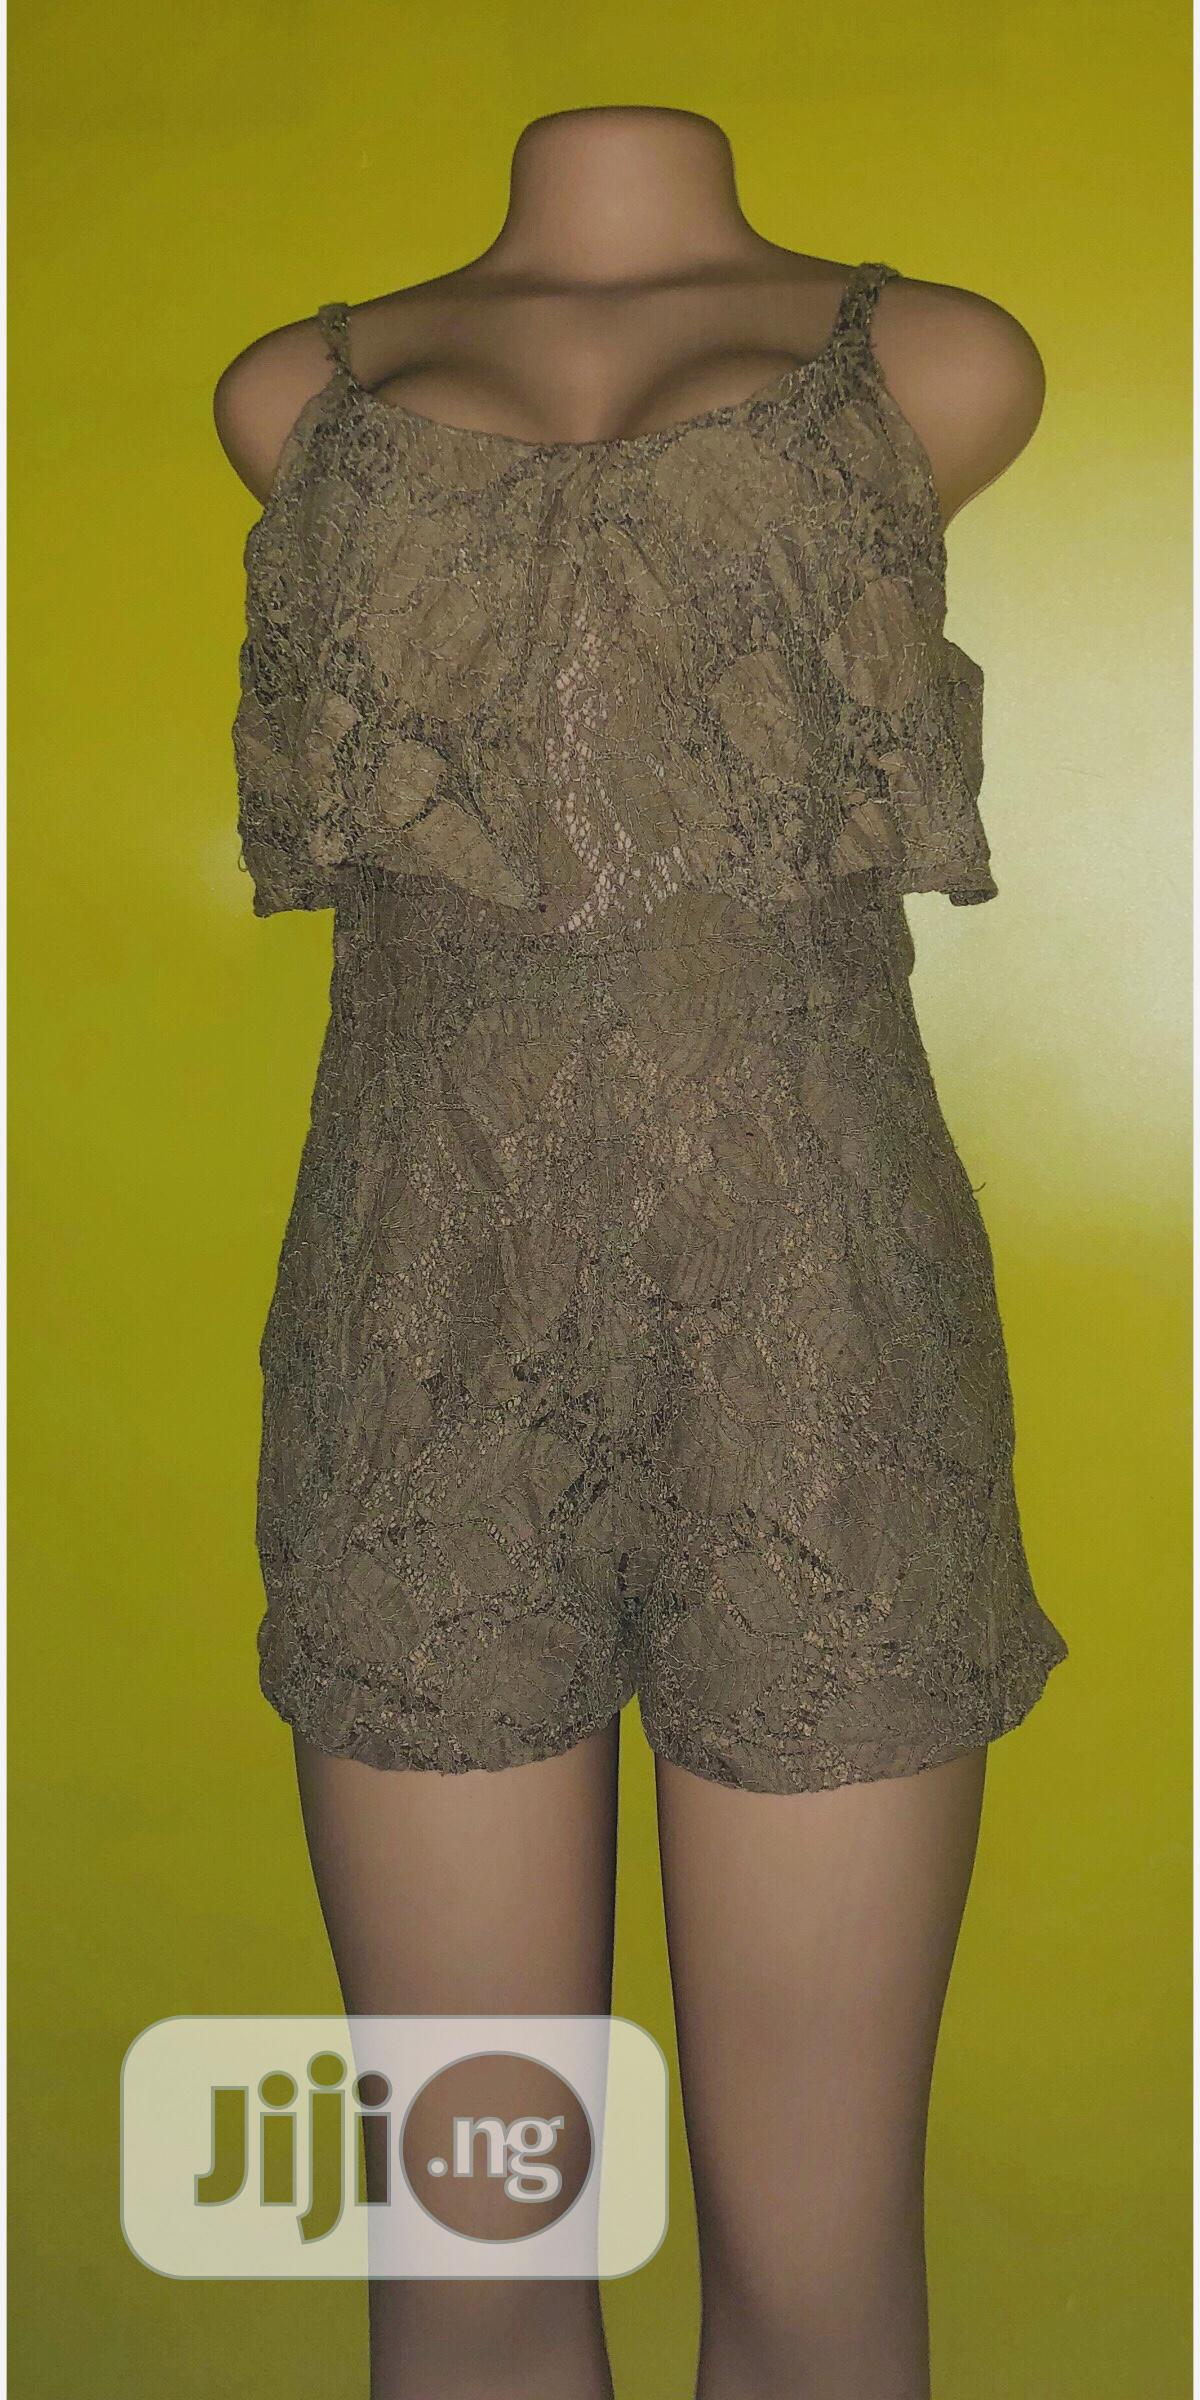 Archive: Thrift Playsuit